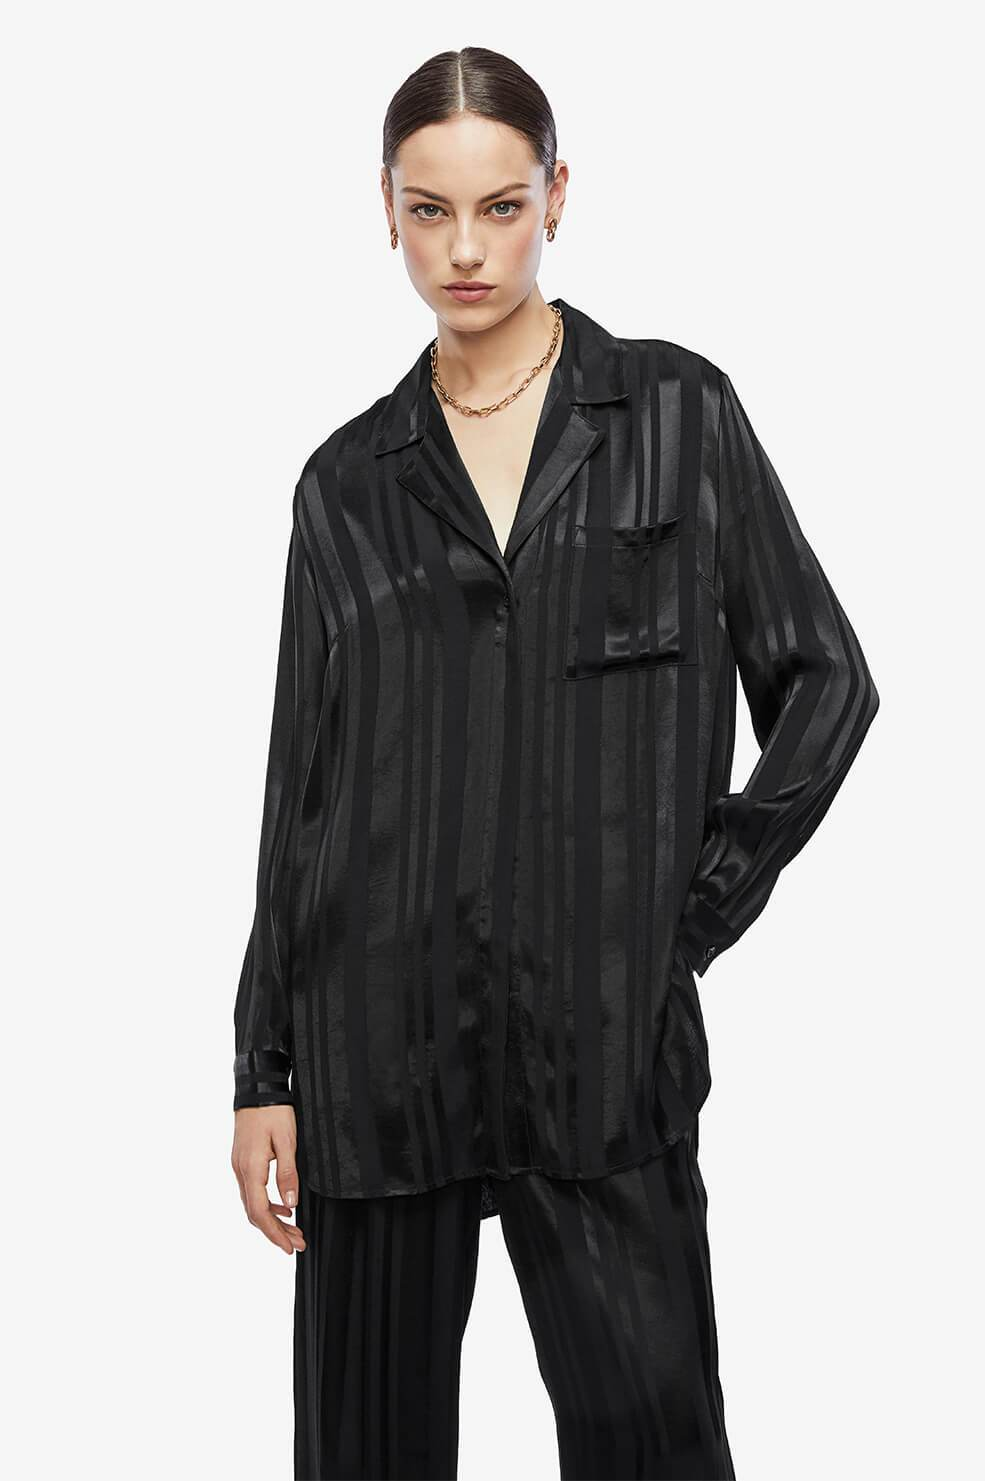 ANINE BING Ash Shirt - Black Tonal Stripe